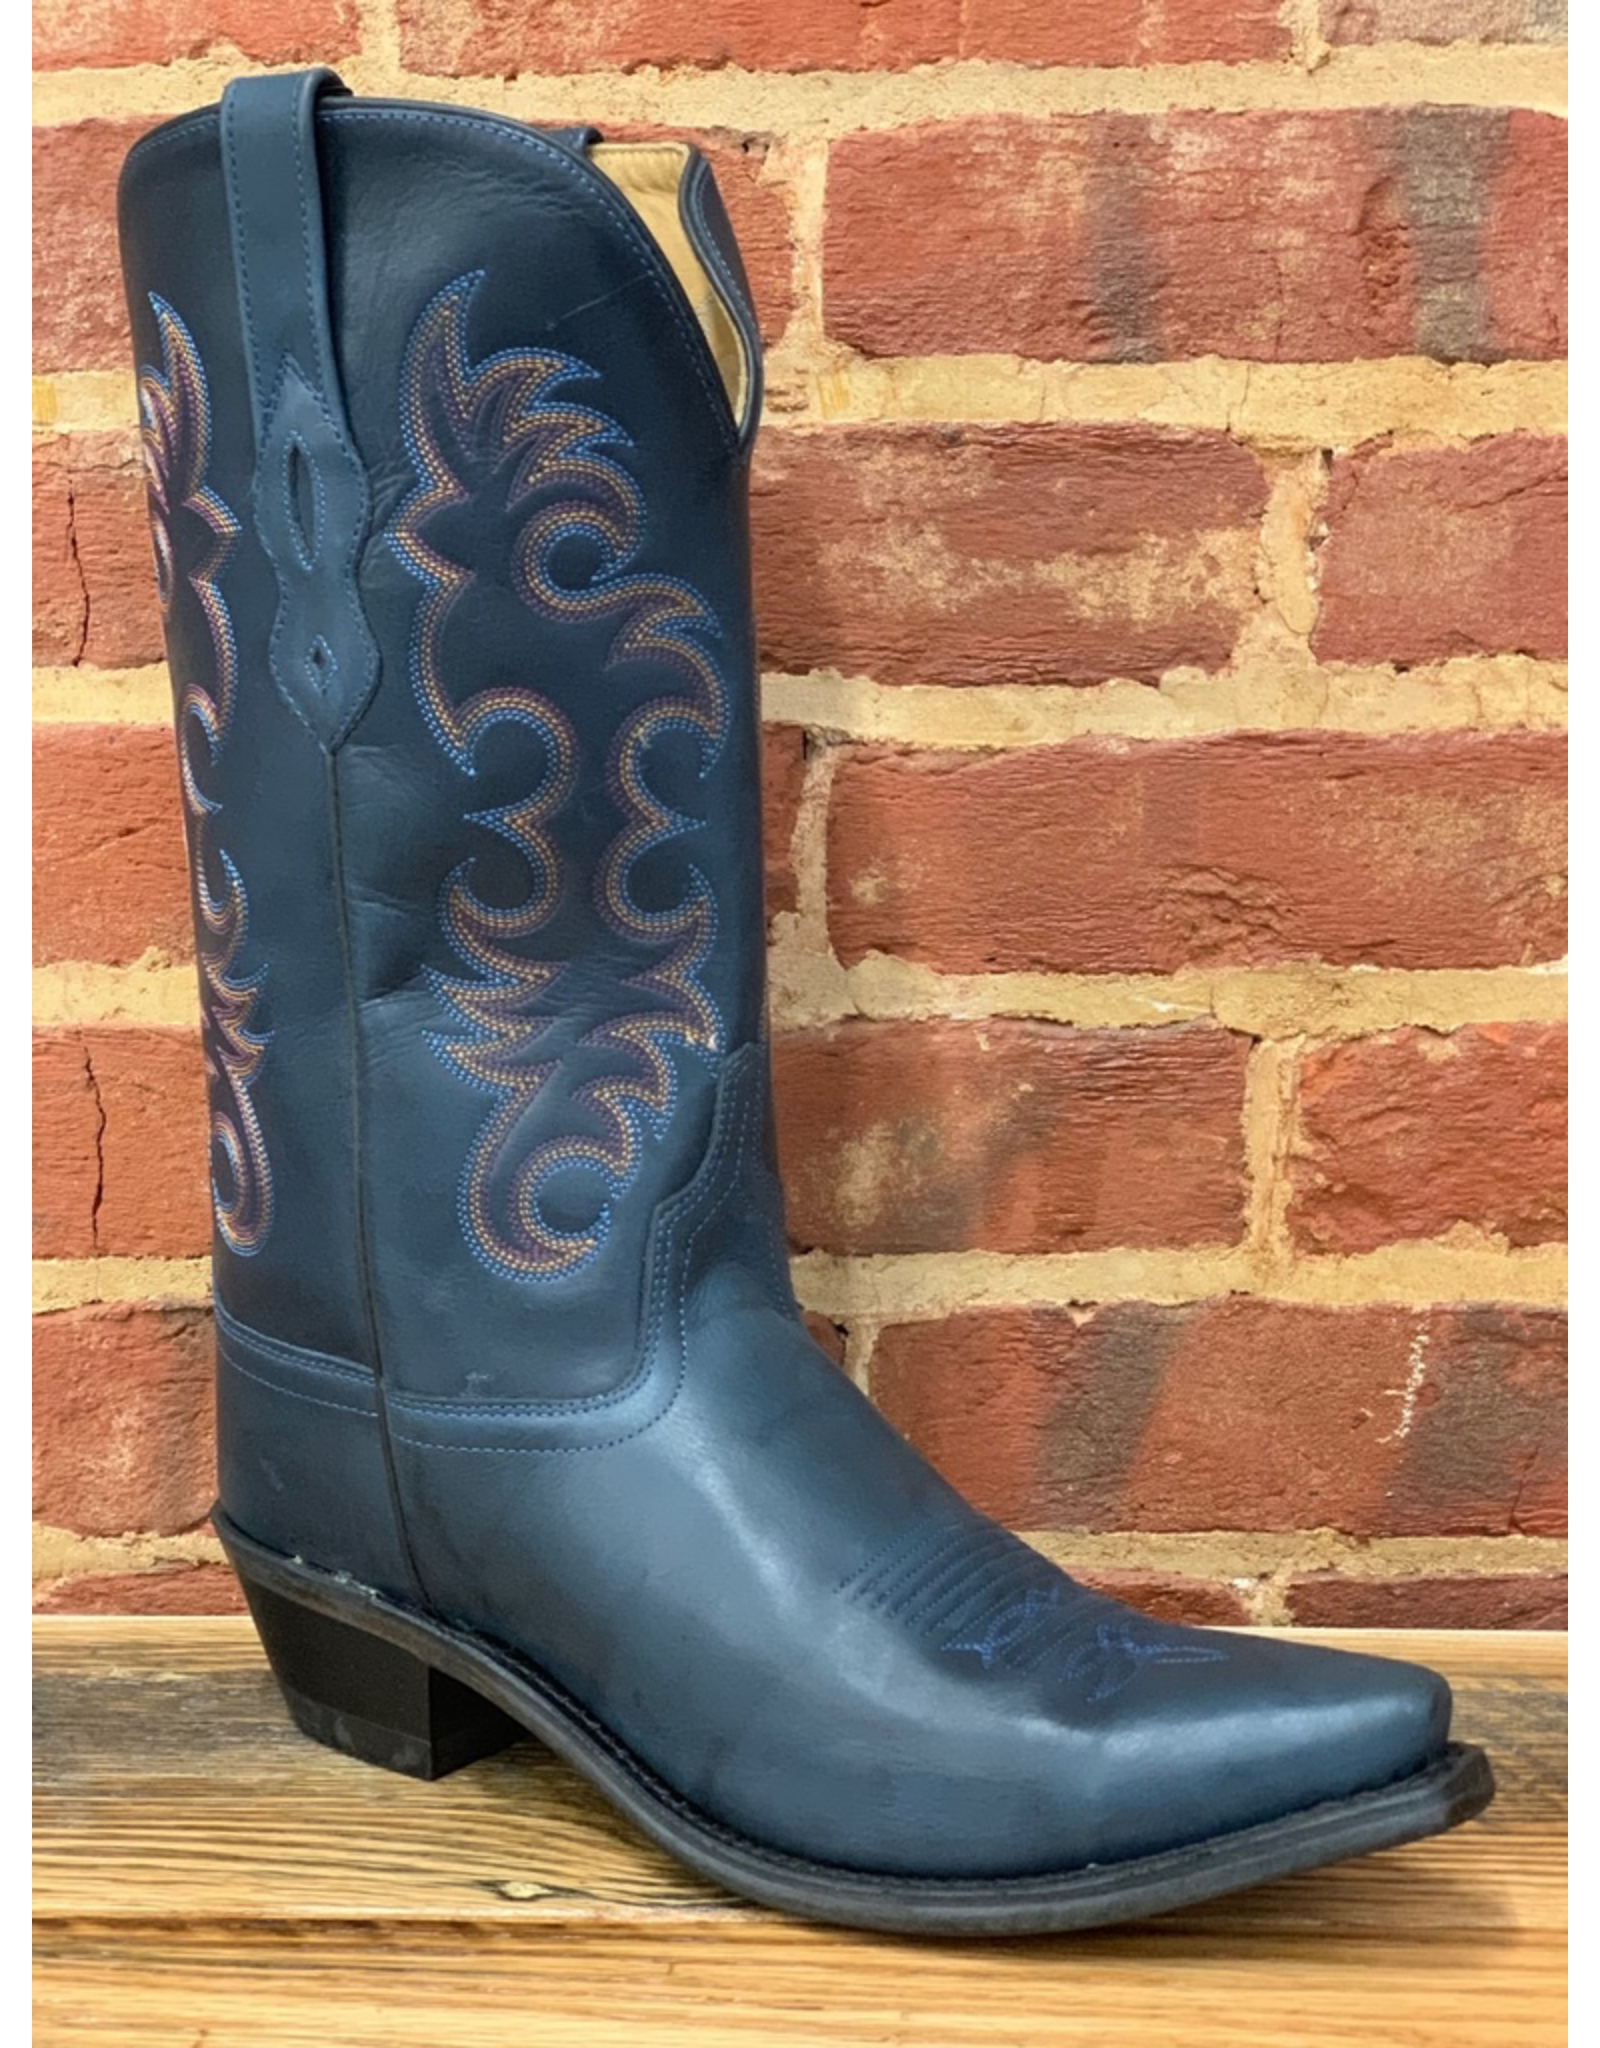 Boots-Women OLD WEST LF1513 Navy Blue Calf